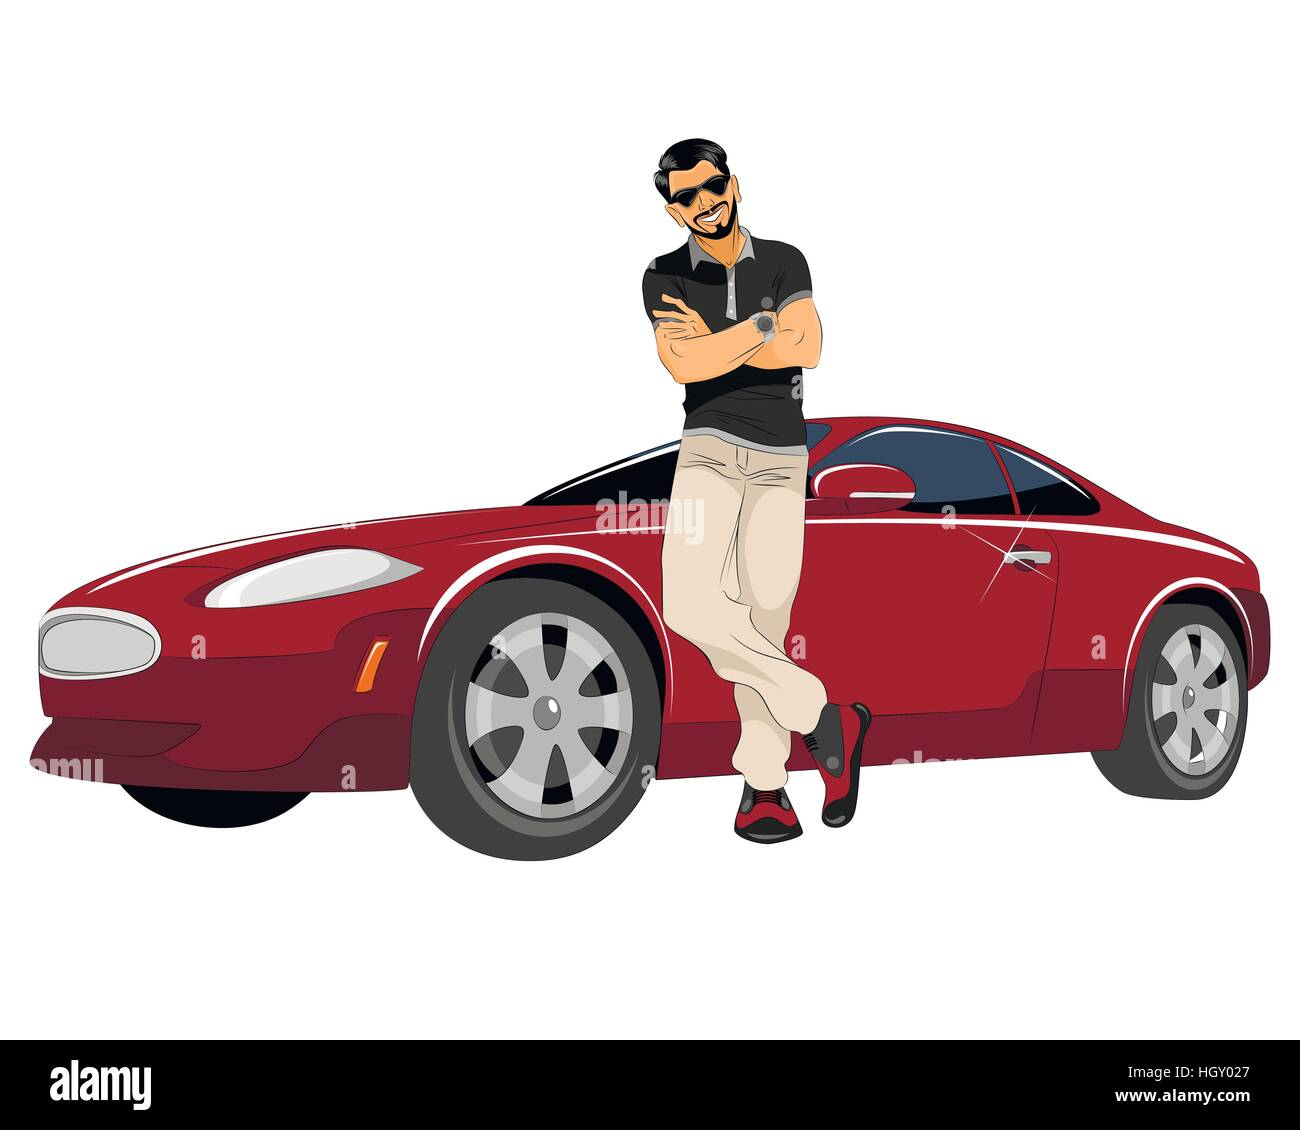 Auto Good Image: Vector Illustration Of A Young Man With Good Car Stock